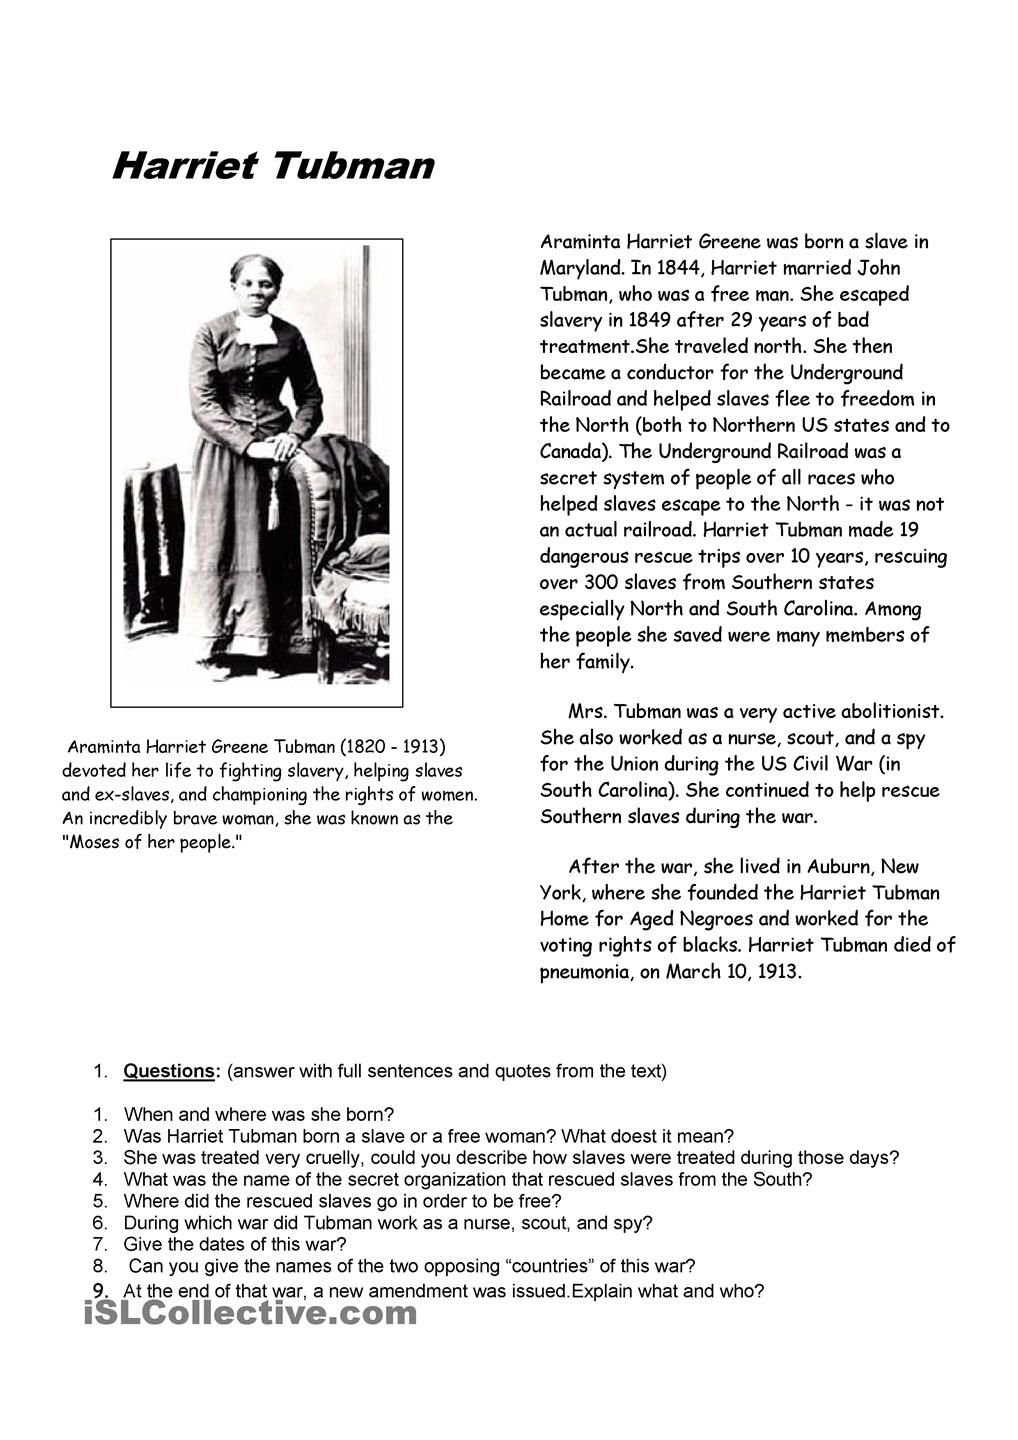 worksheet Harriet Tubman Worksheets harriet tubman teacher forms pinterest reading comprehension on one f the most famous slave who gained freedom and fought against slavery she was of the